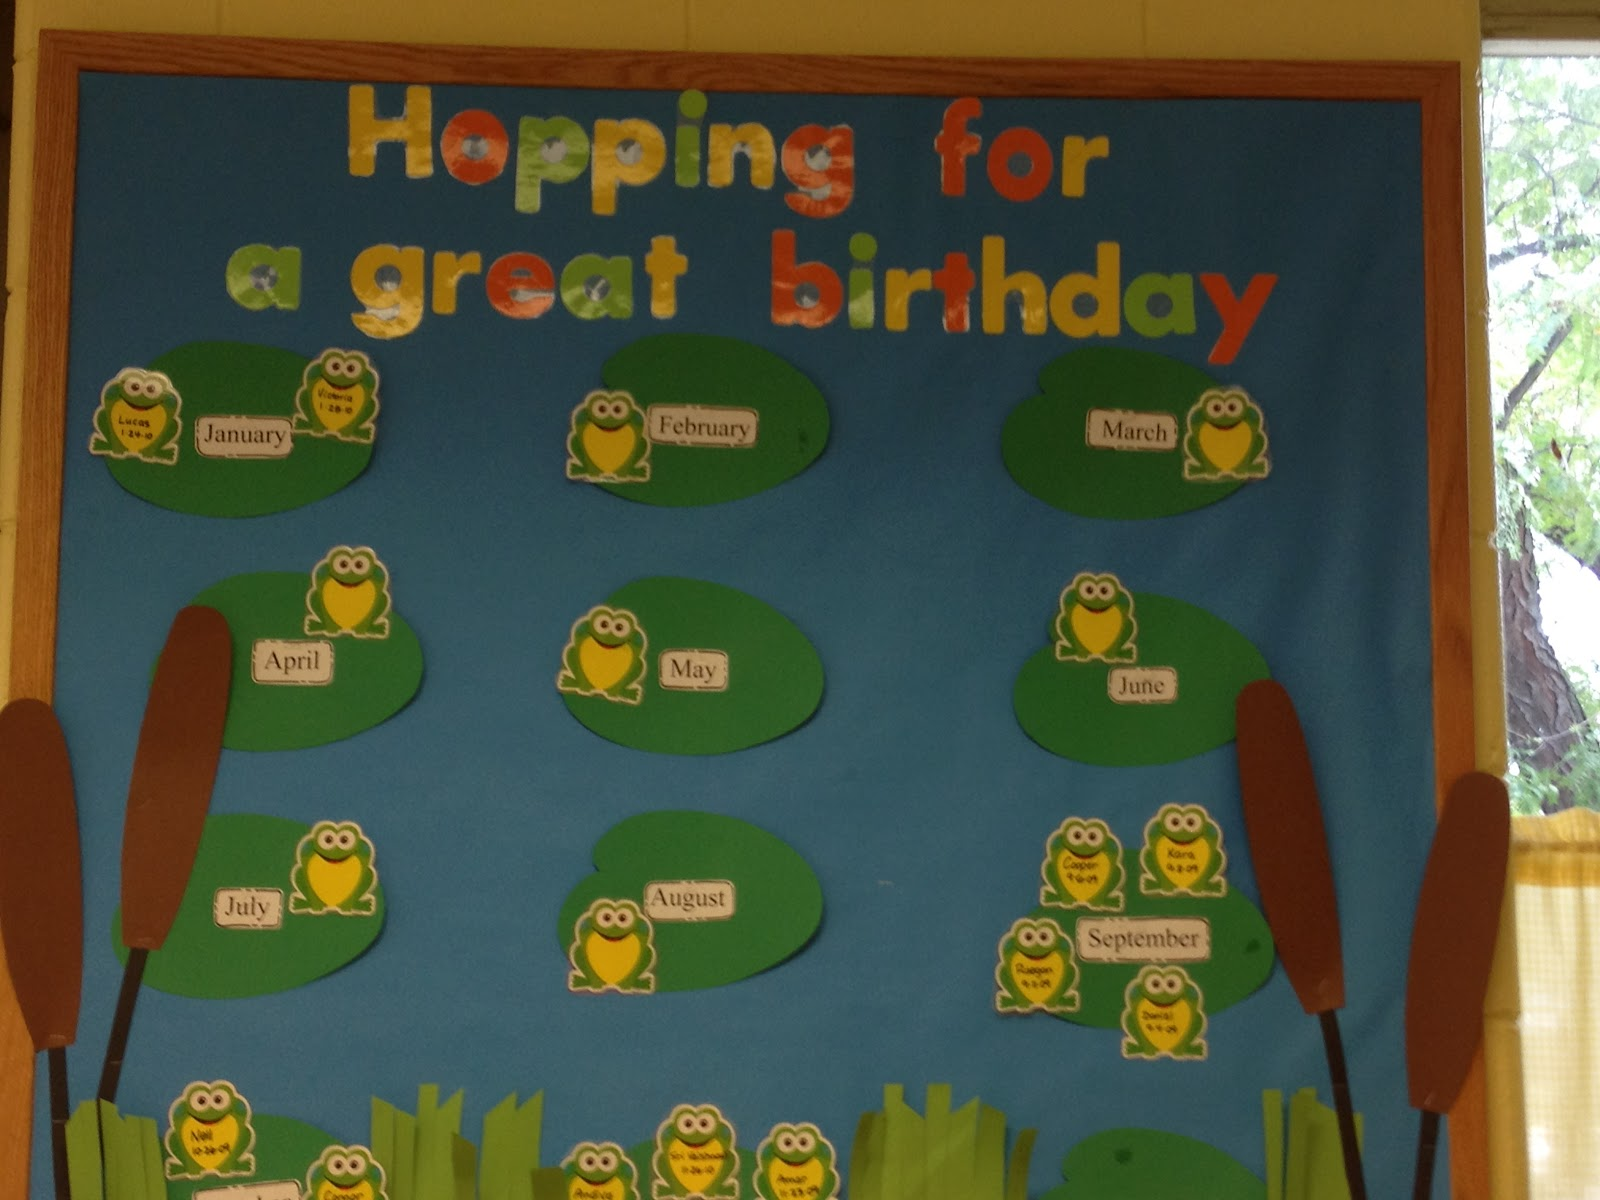 October Bulletin Board Ideas Preschool http://trinitypreschoolmp.blogspot.com/2012/08/preschool-birthday-bullletin-boards.html